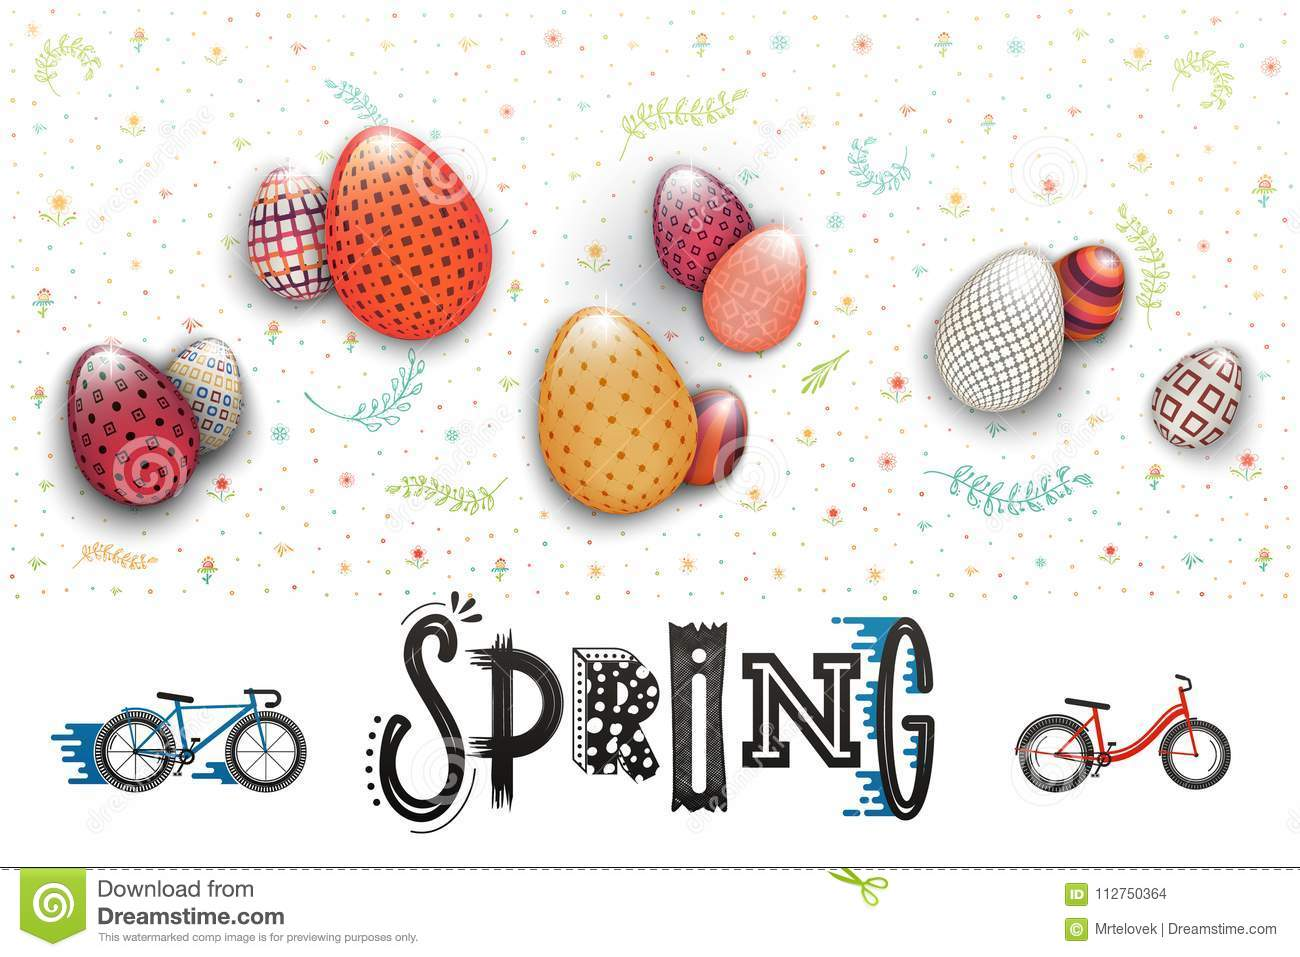 Spring Easter Is A Beautiful Badge Lettering And The Pattern Of Eggs